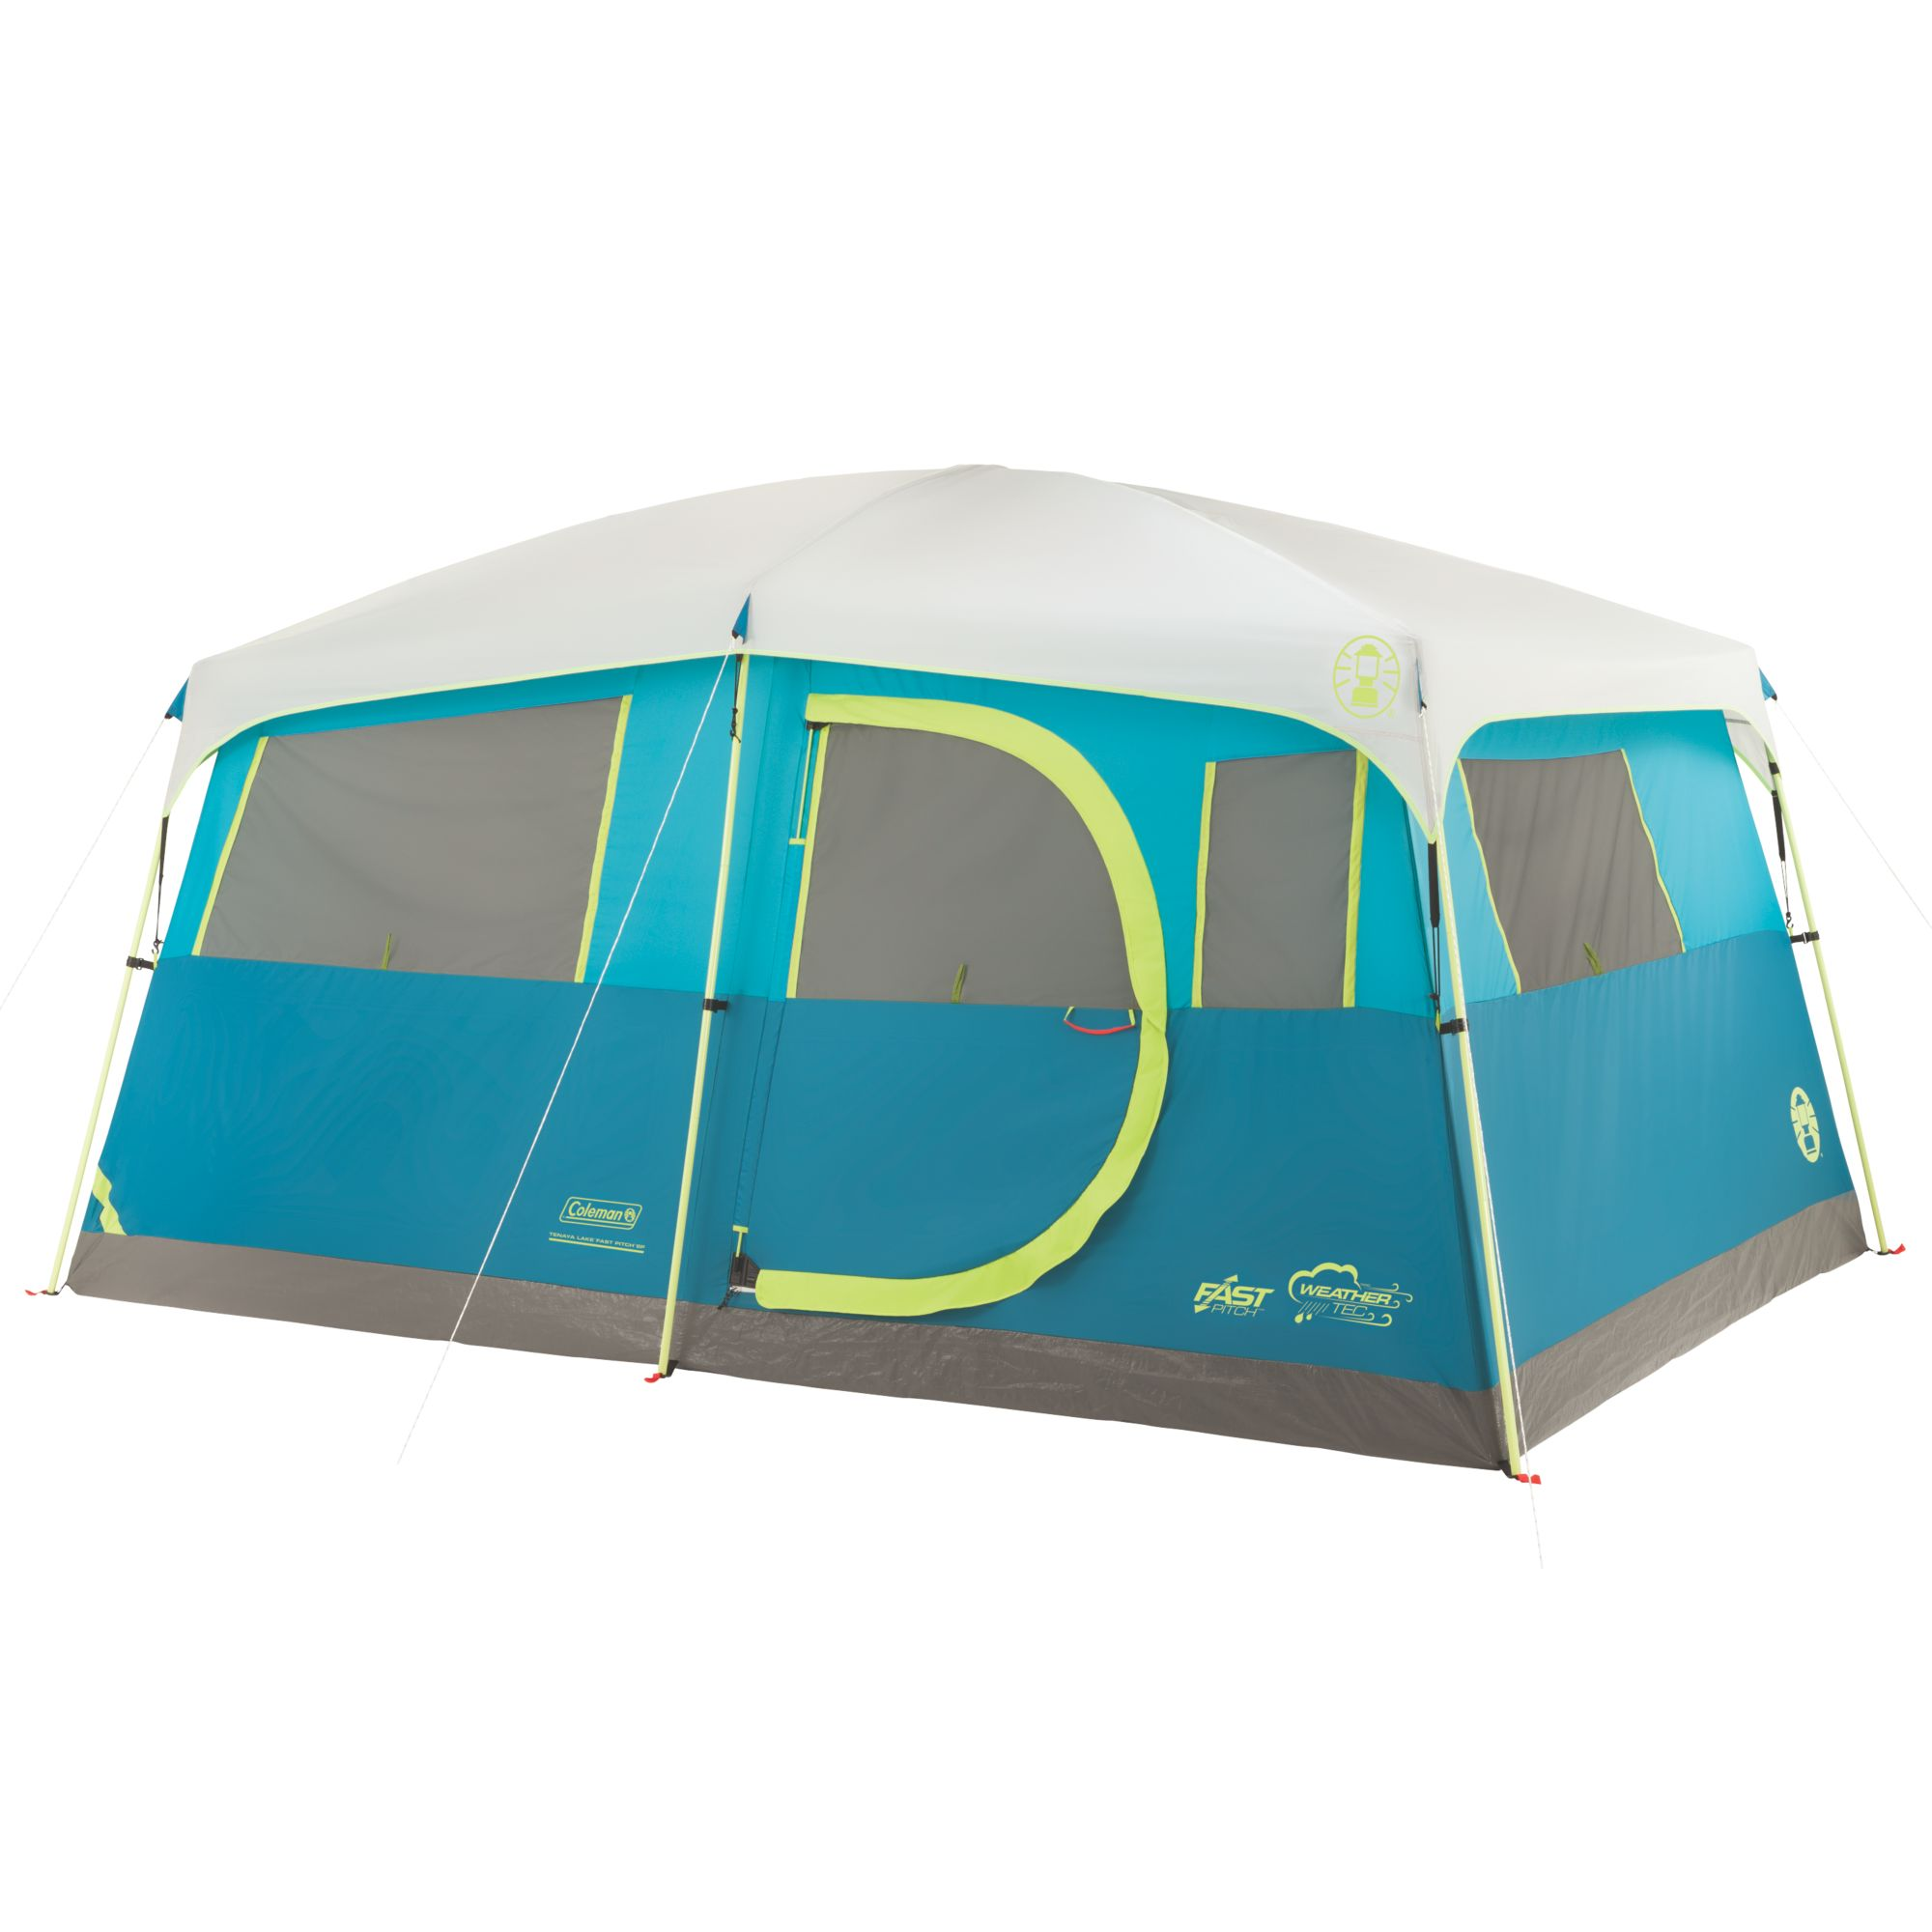 8 person tent coleman tents coleman tenaya lake fast pitch 8 person cabin with closet sciox Gallery